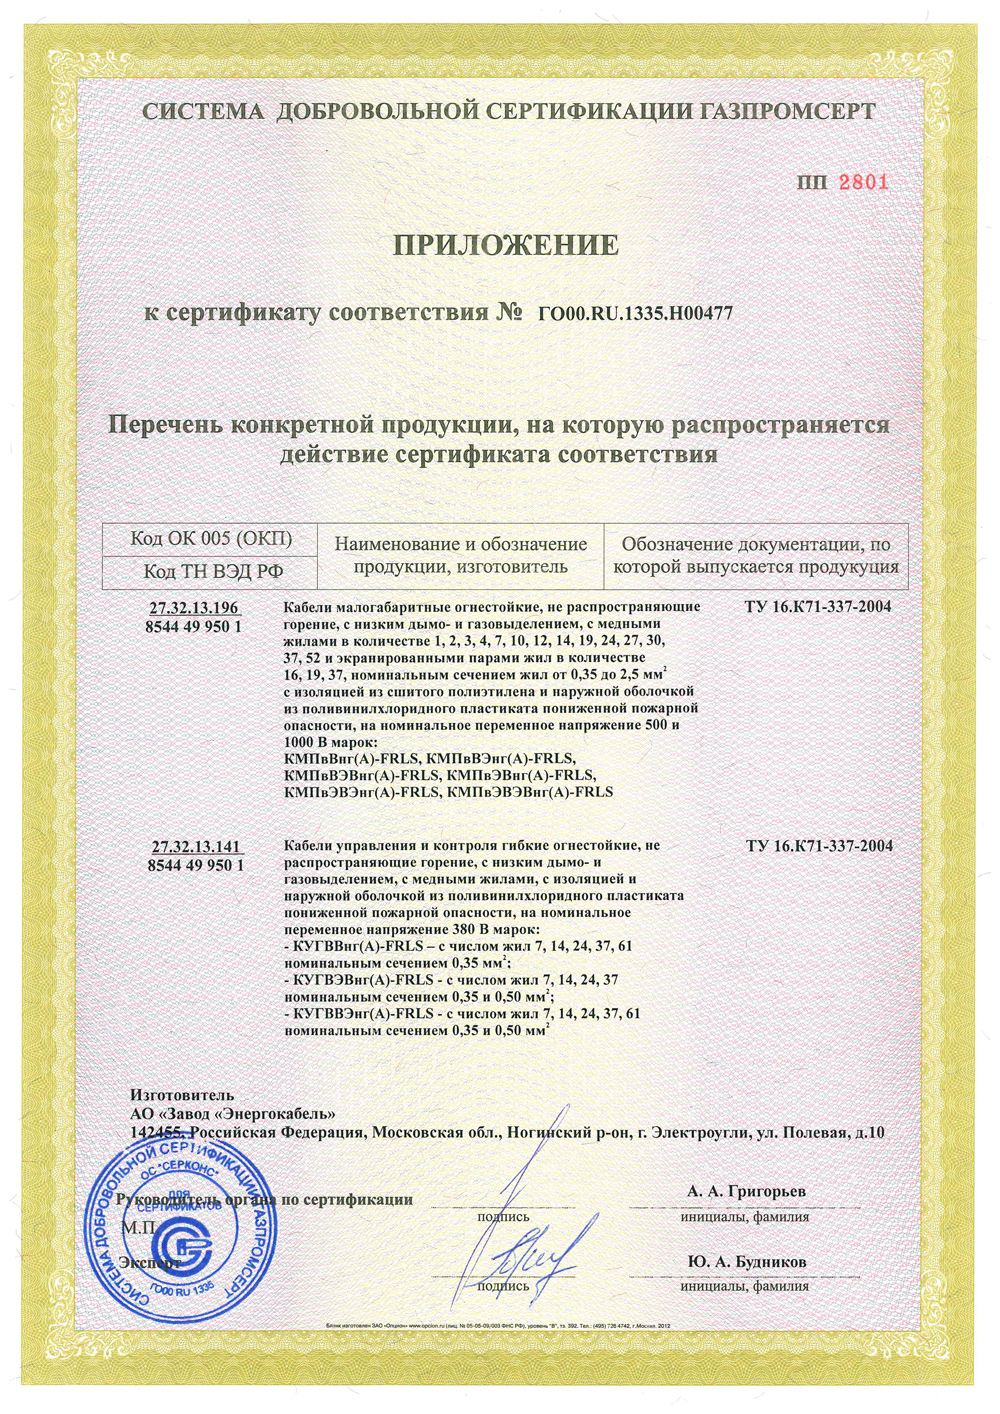 The appendix №2 to the Certificate of Conformity № ГО00.RU.1335.Н00477.